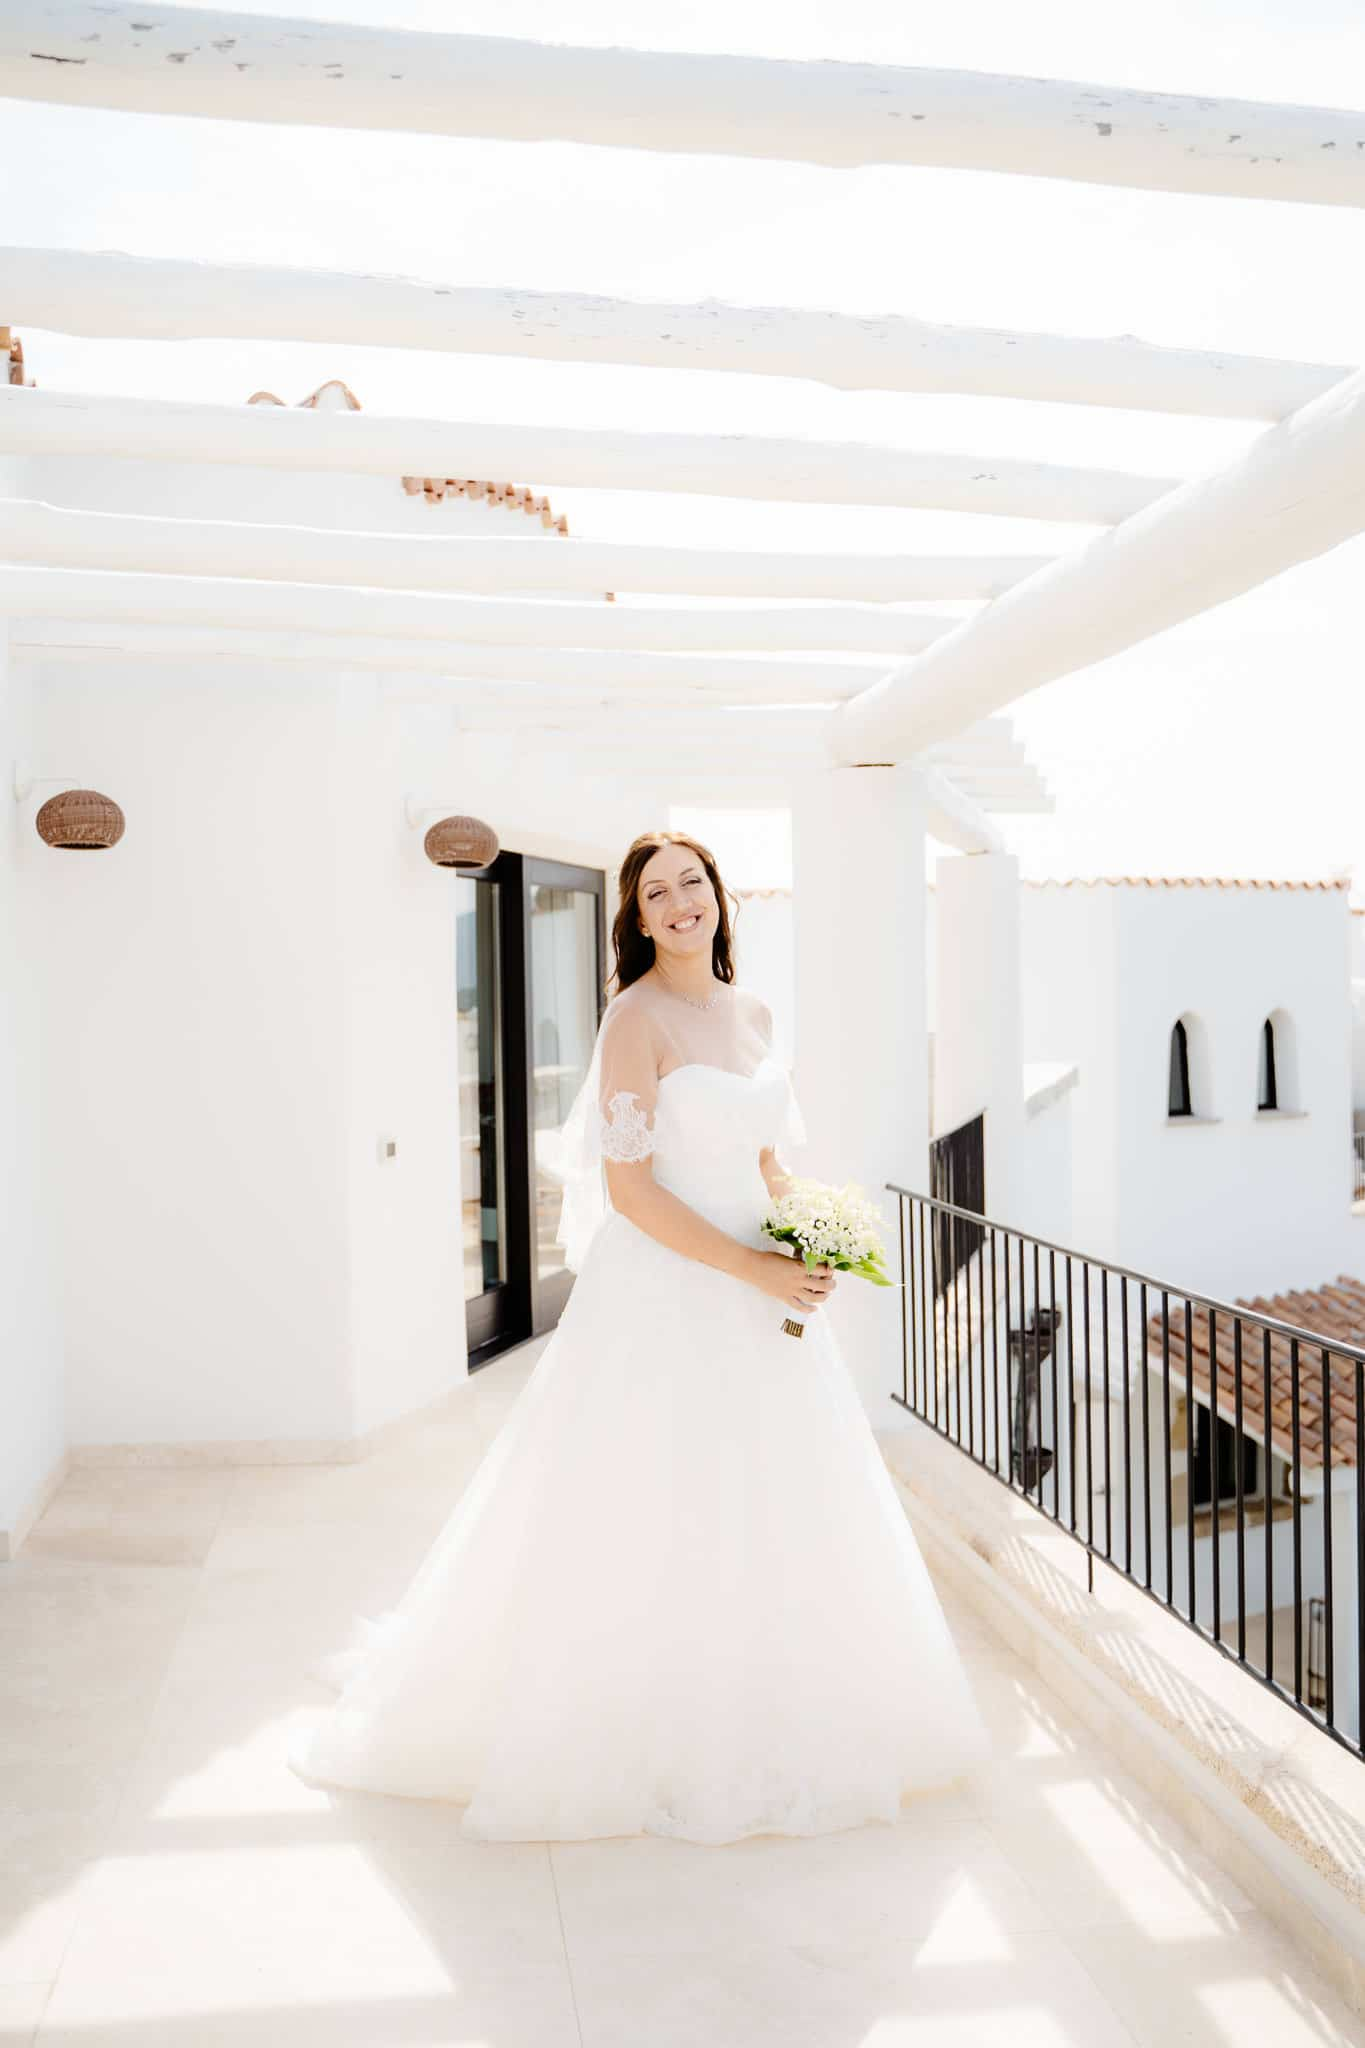 San Pantaleo wedding photographer